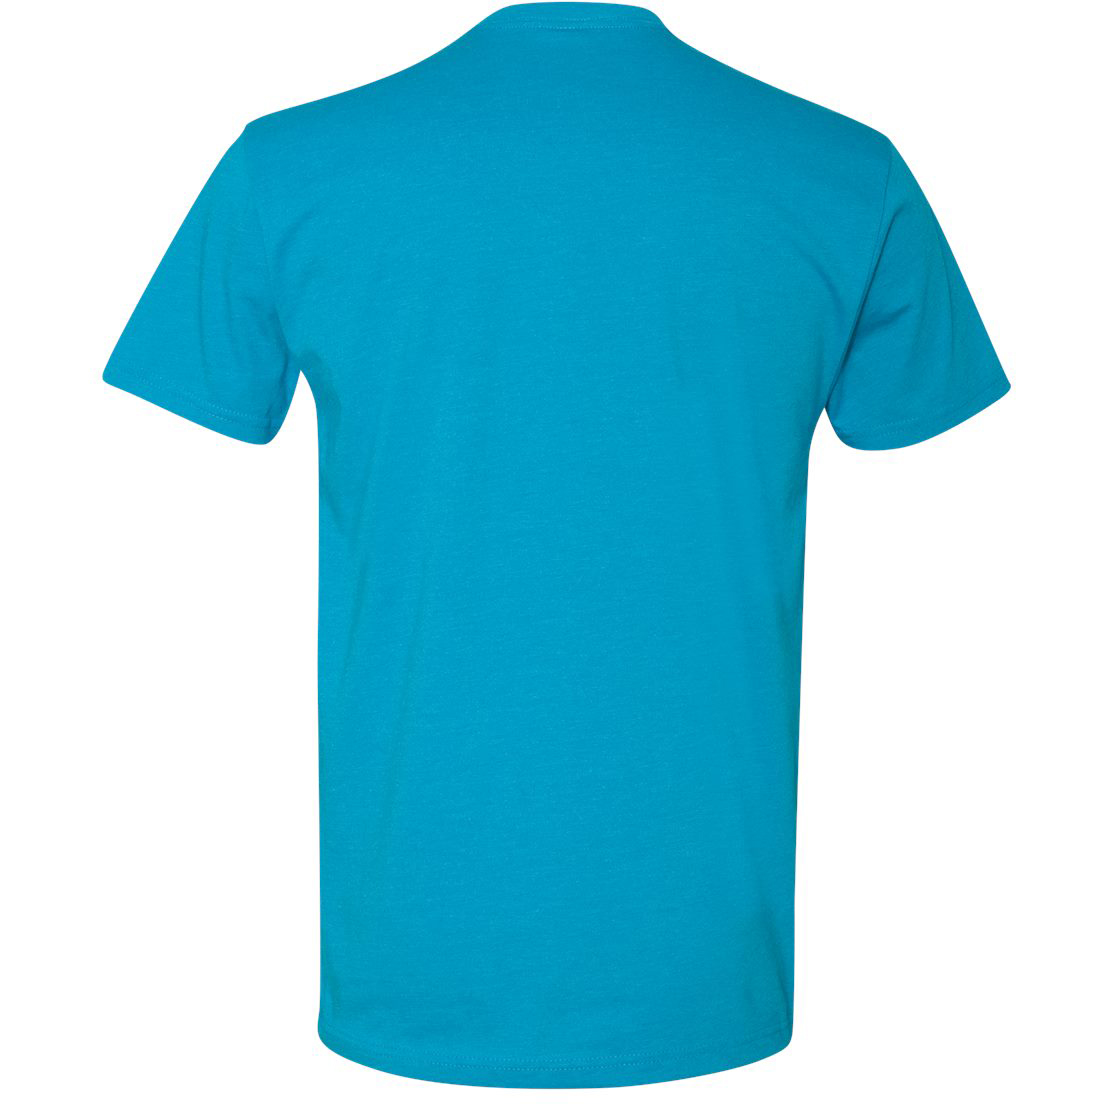 Next level 6210 premium fitted cvc crew turquoise for Apple shirt screen printing